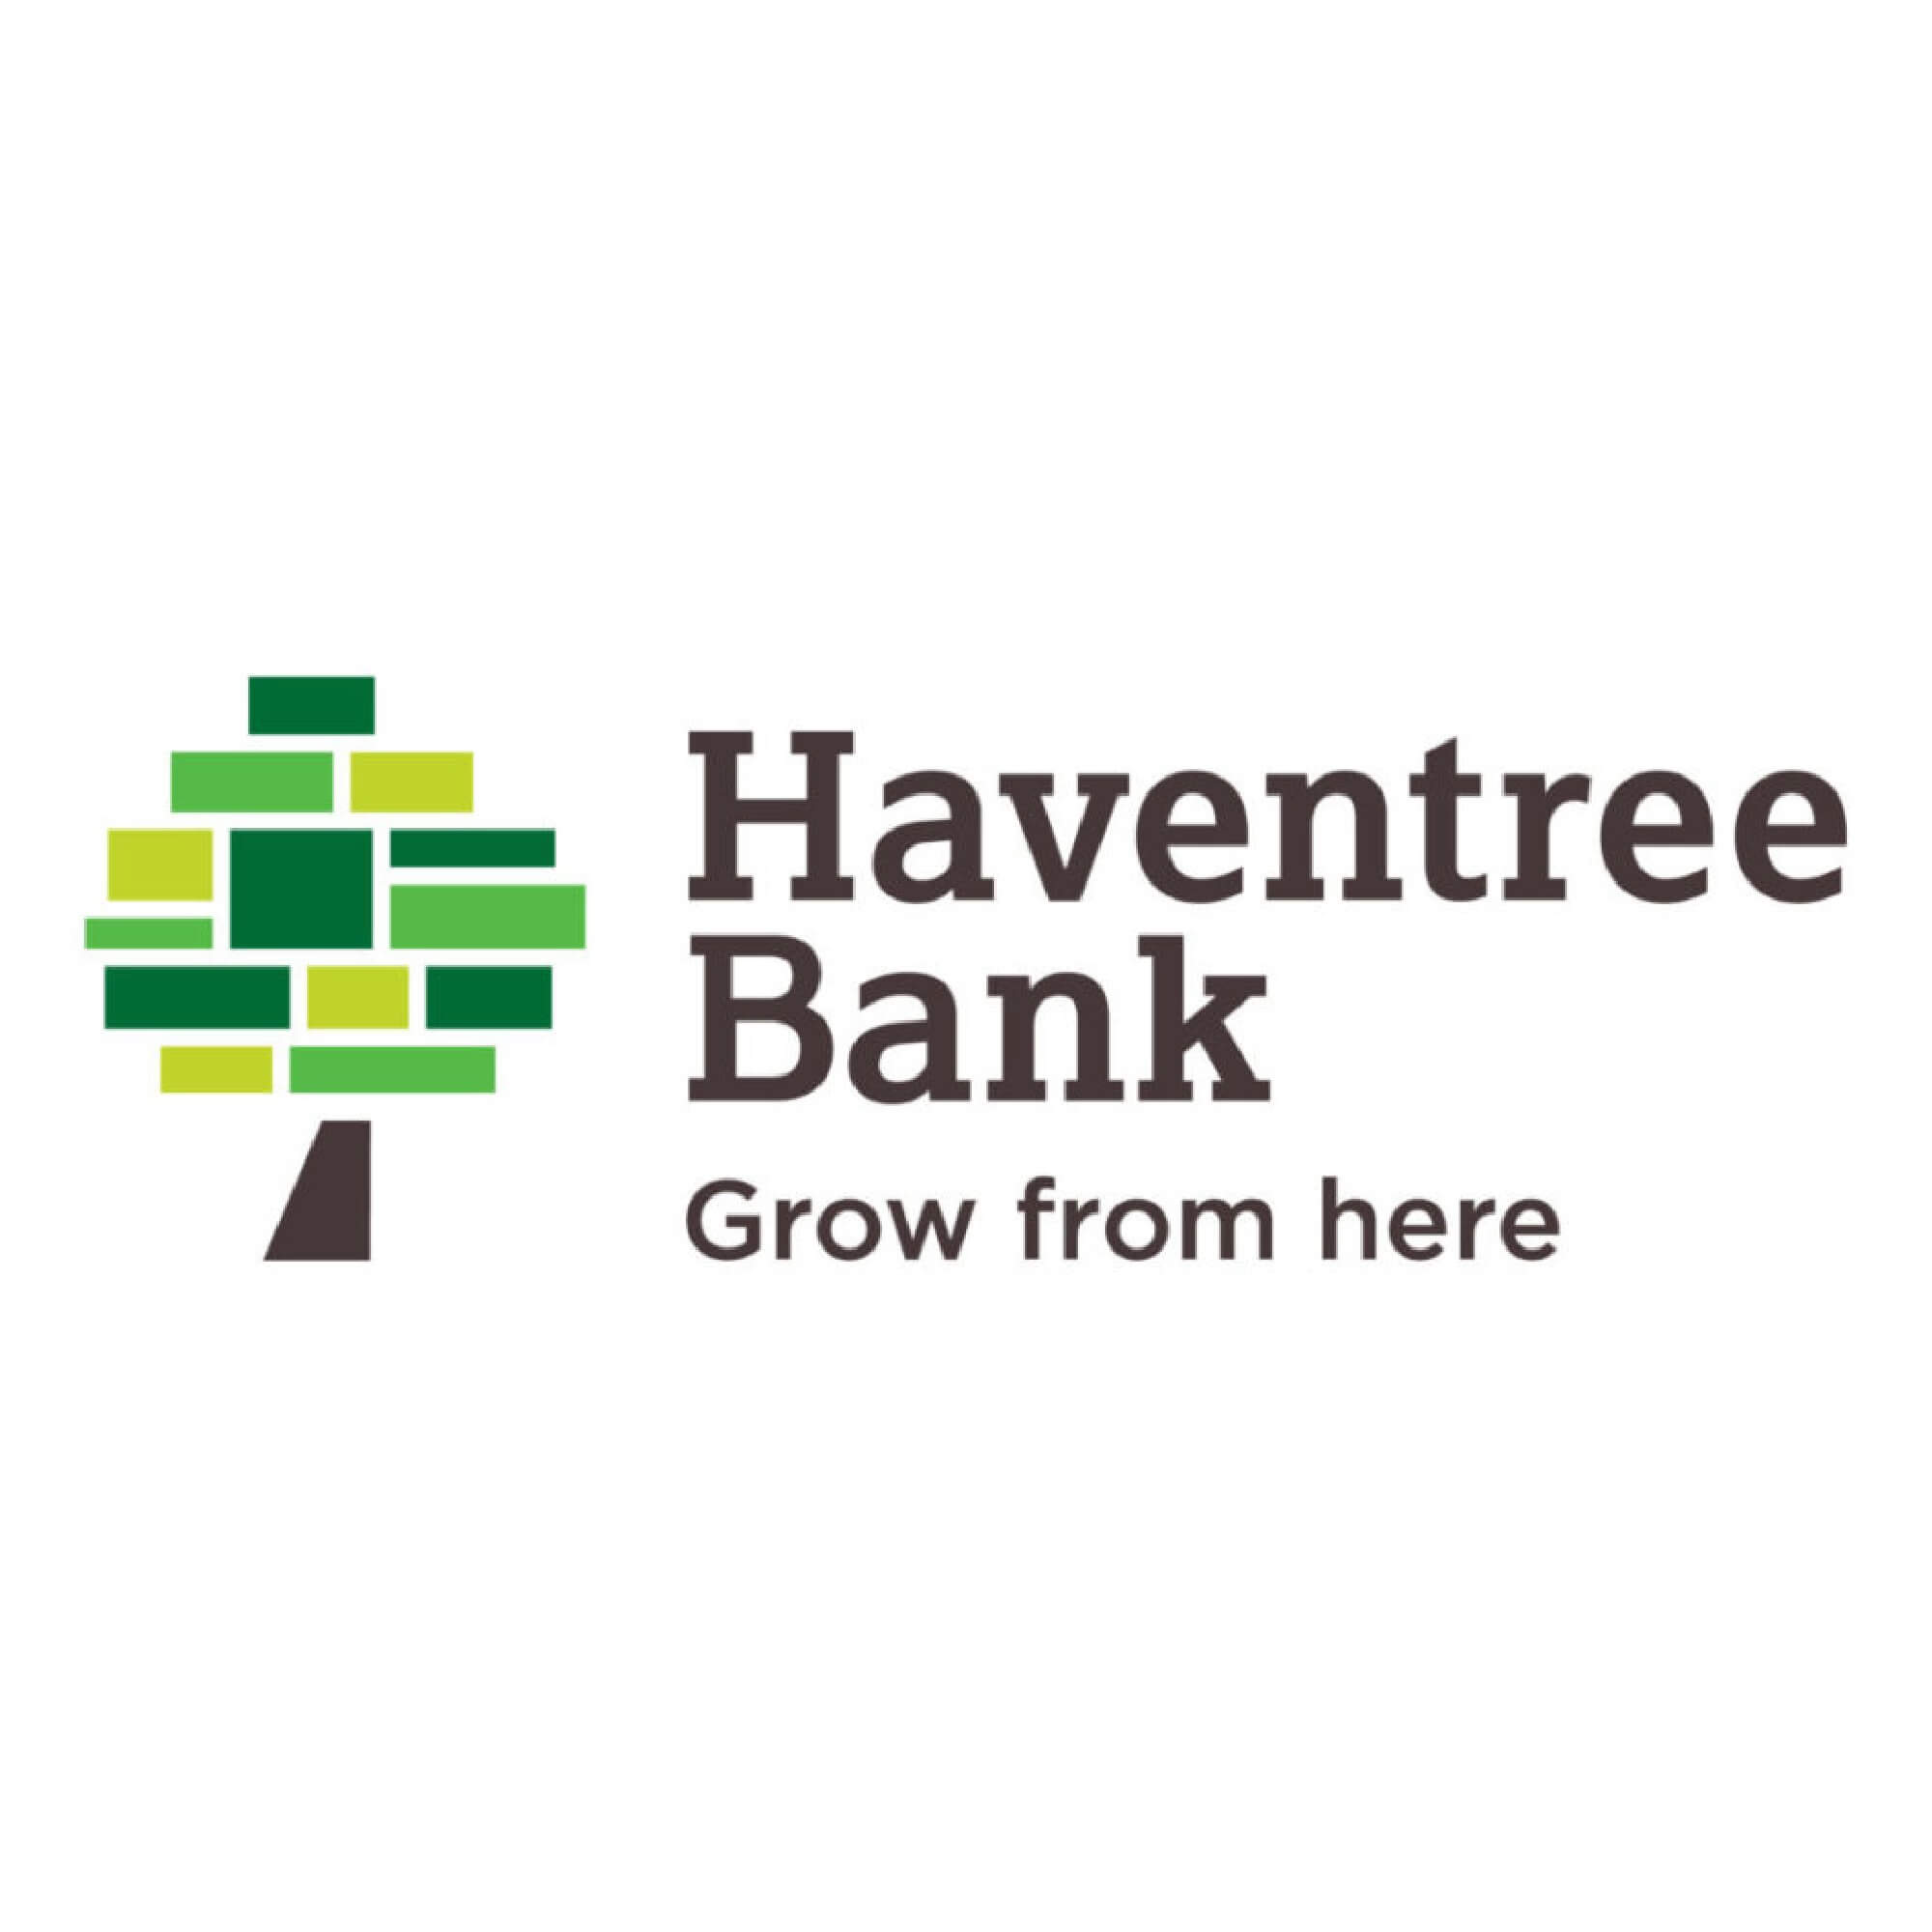 haventree bank